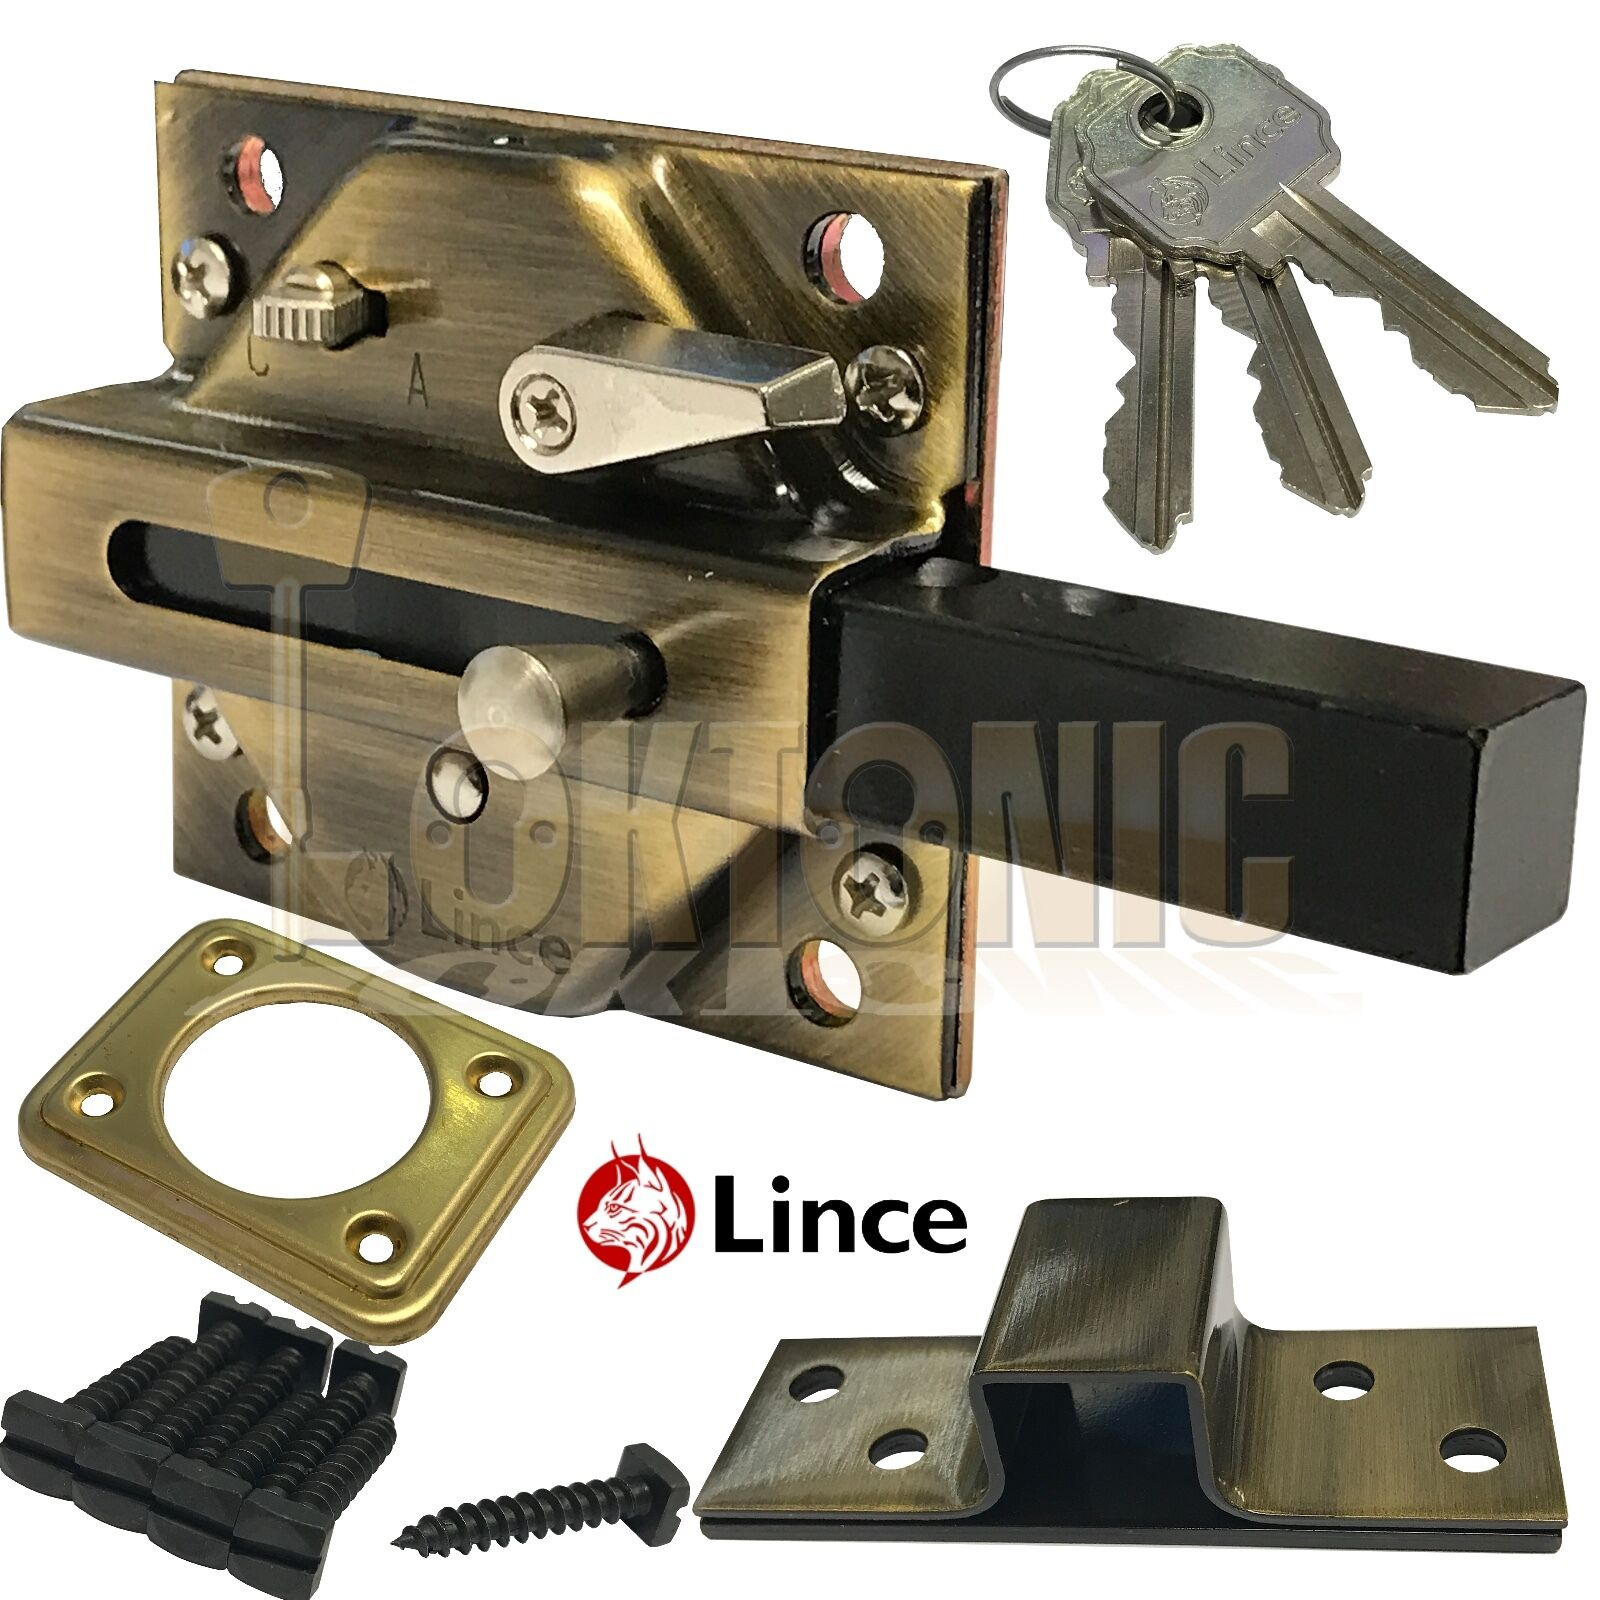 awesome of latch rubbermaid luxury door locks storage tuff full hardware shed replacement fresh handles sheds locking